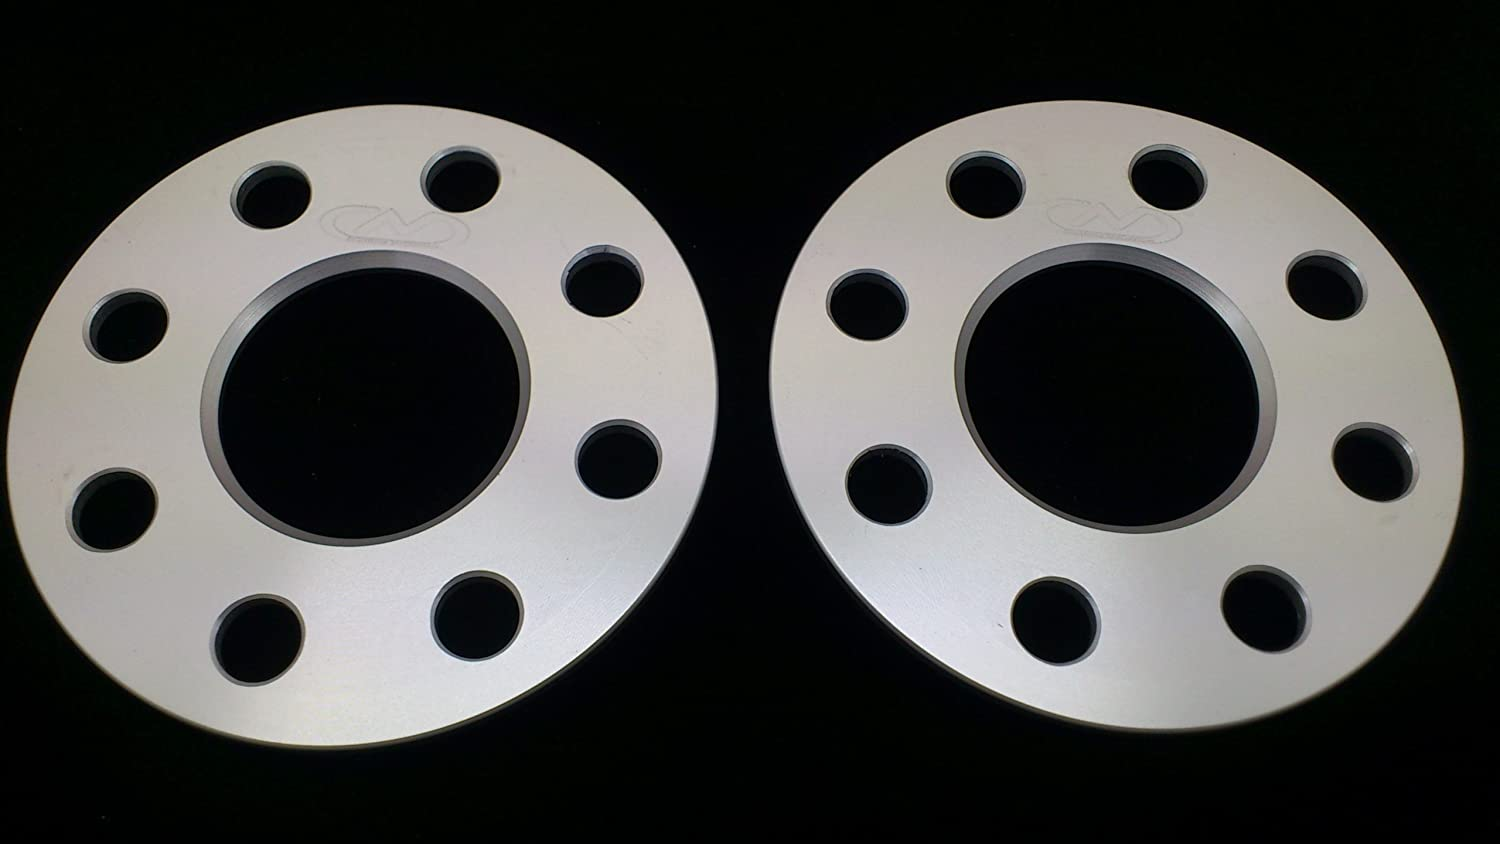 BOXSTER, S, 955 996 997 986 987 CARRERA GT 5x130 7mm HUBCENTRIC WHEEL SPACERS CENTRE BORE 71.5MM CREATIONSMOTORSPORT